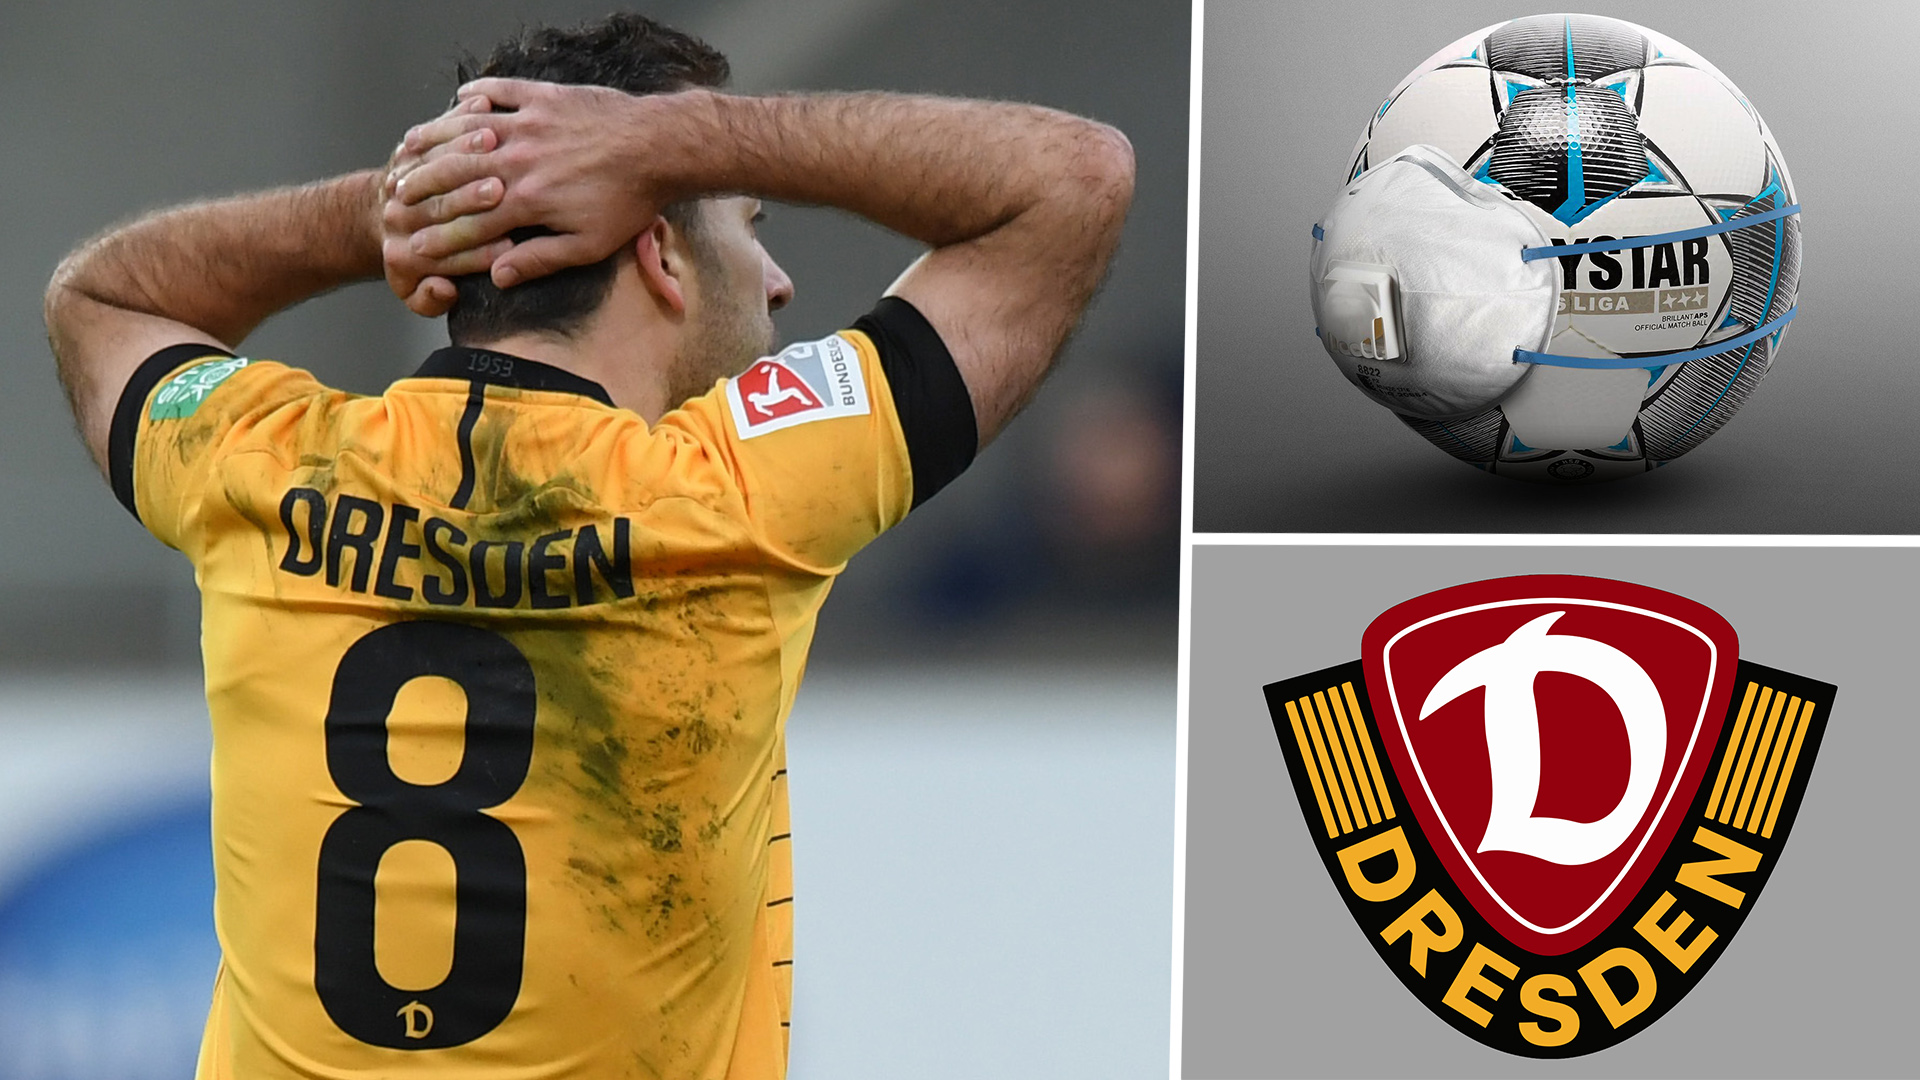 Bundesliga 2 side Dynamo Dresden ordered to quarantine squad ahead of restart